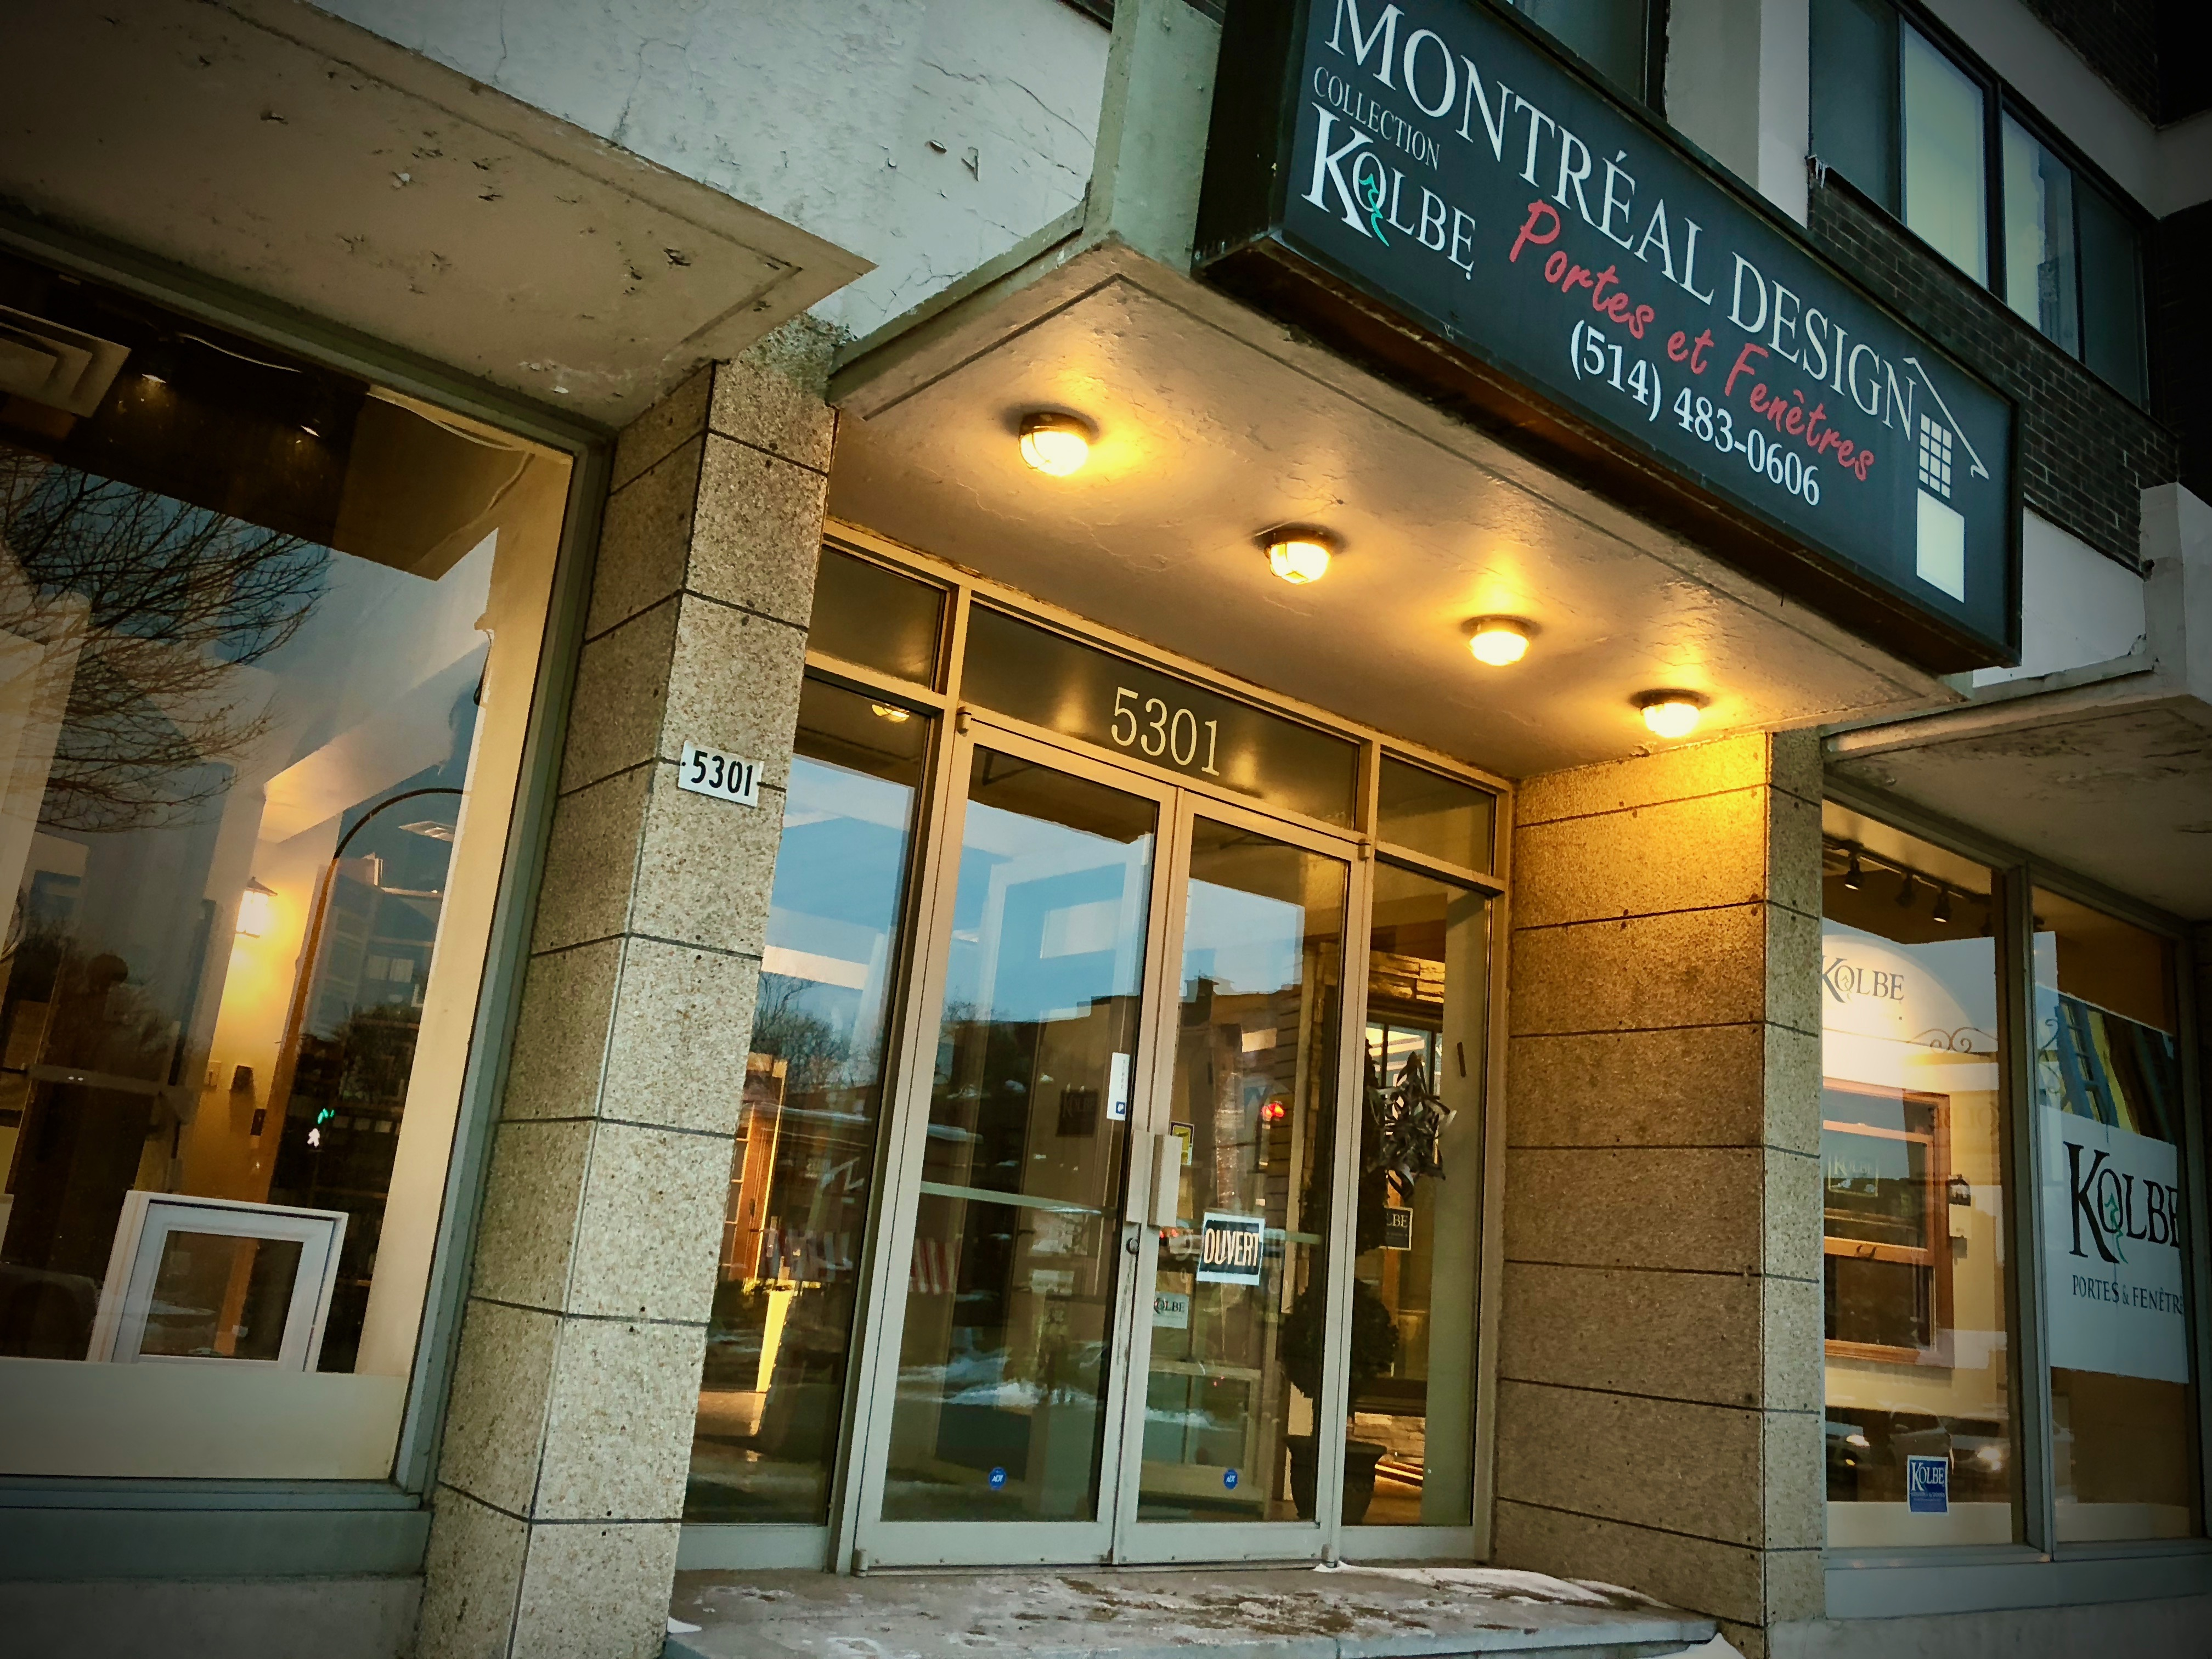 Montreal Design Portes et Fenetres Showroom